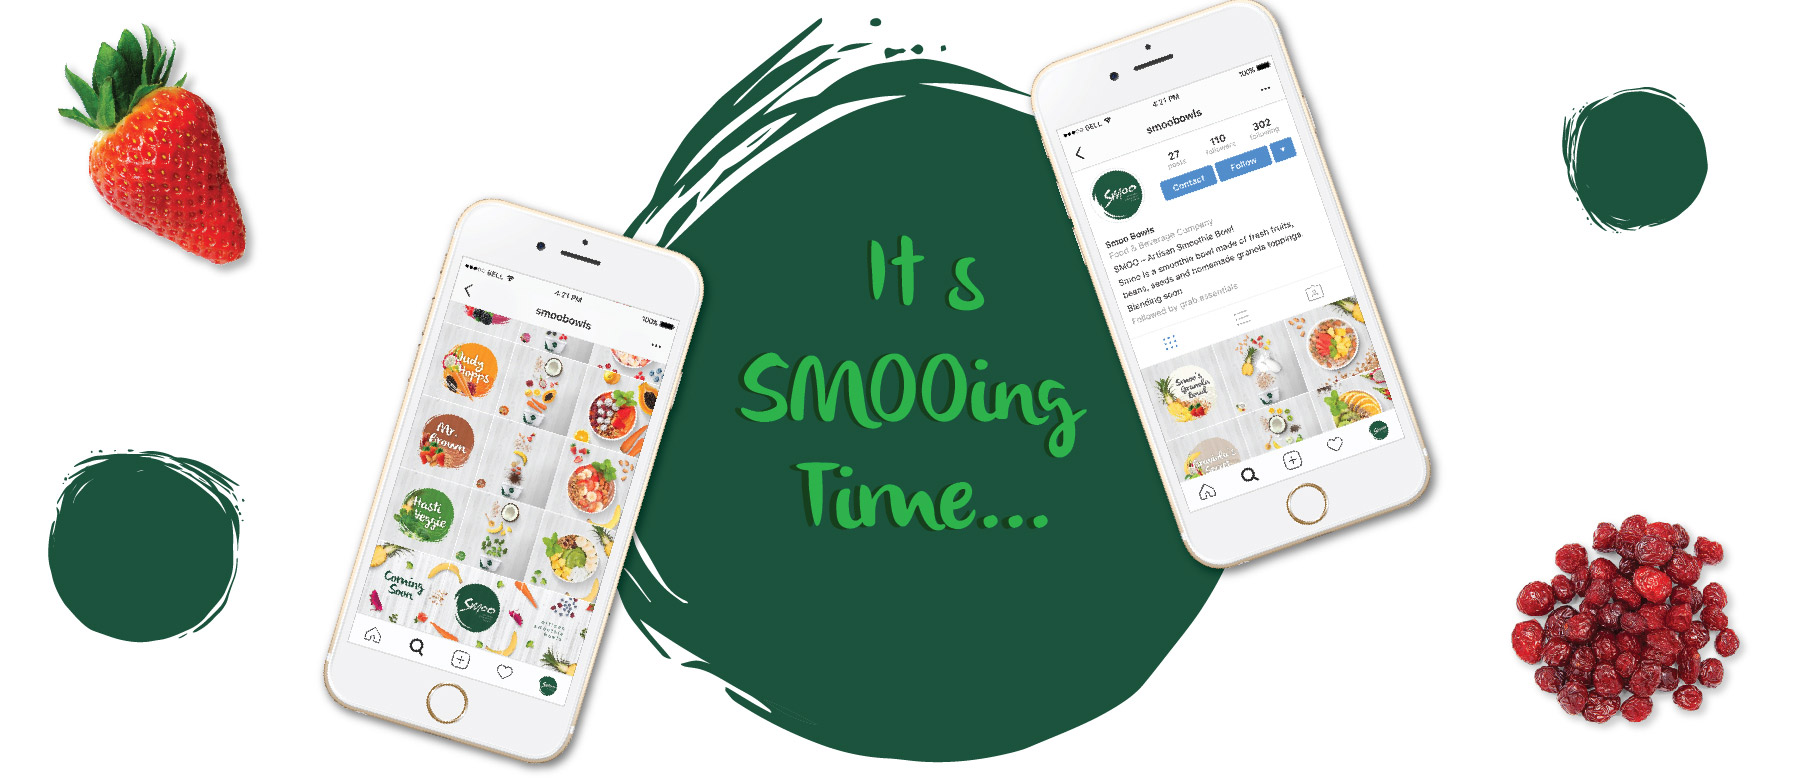 Smoo bowls social Media Management by Grab Essentials